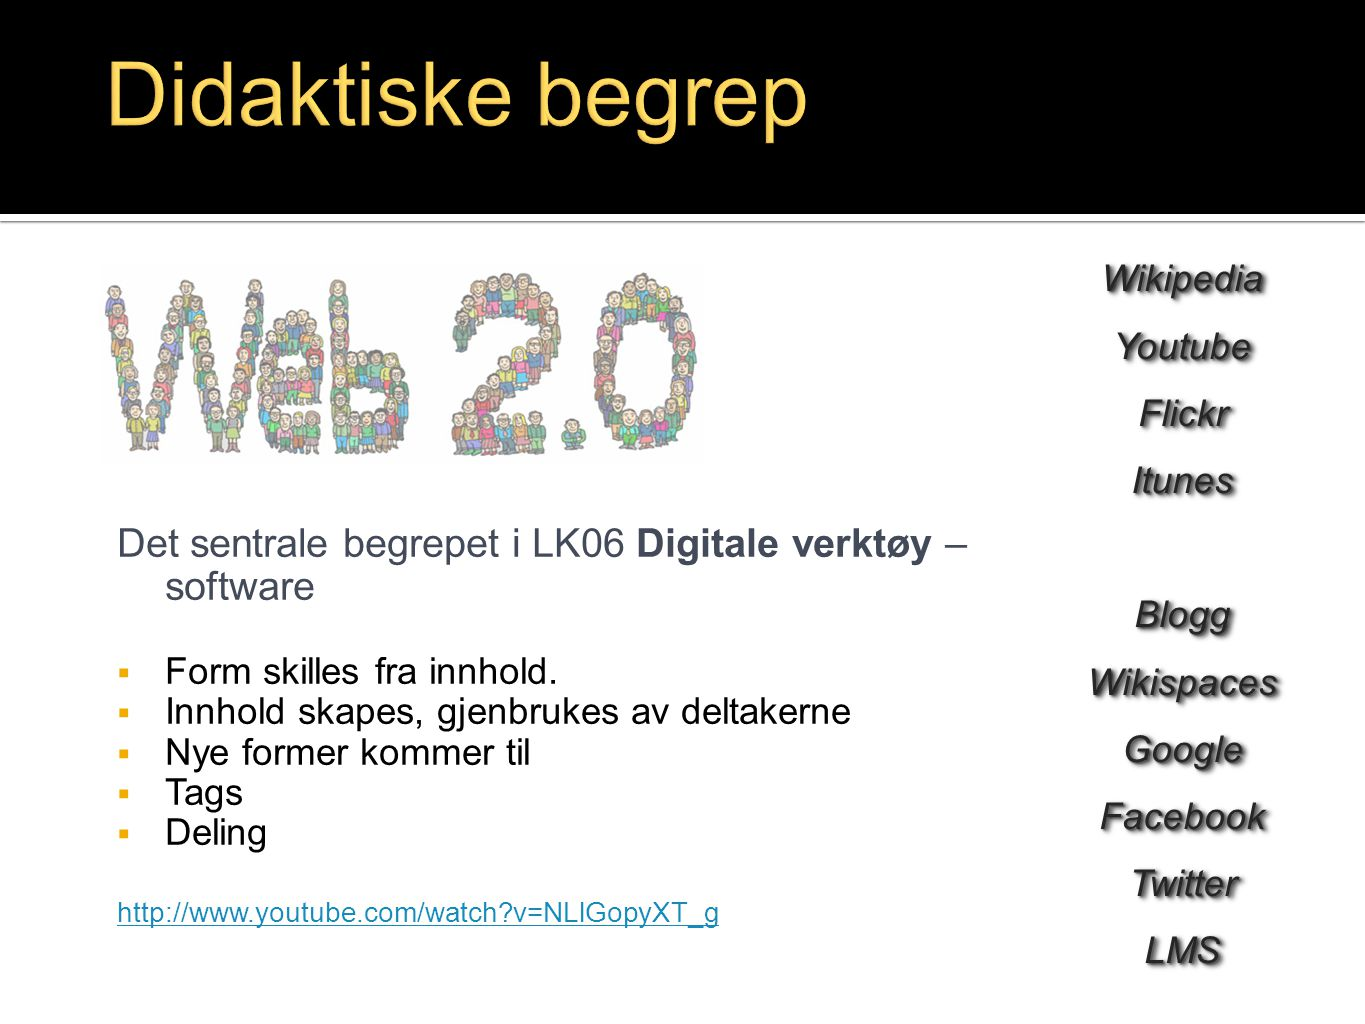 Didaktiske begrep Wikipedia. Youtube. Flickr. Itunes. Blogg. Wikispaces. Google. Facebook. Twitter.